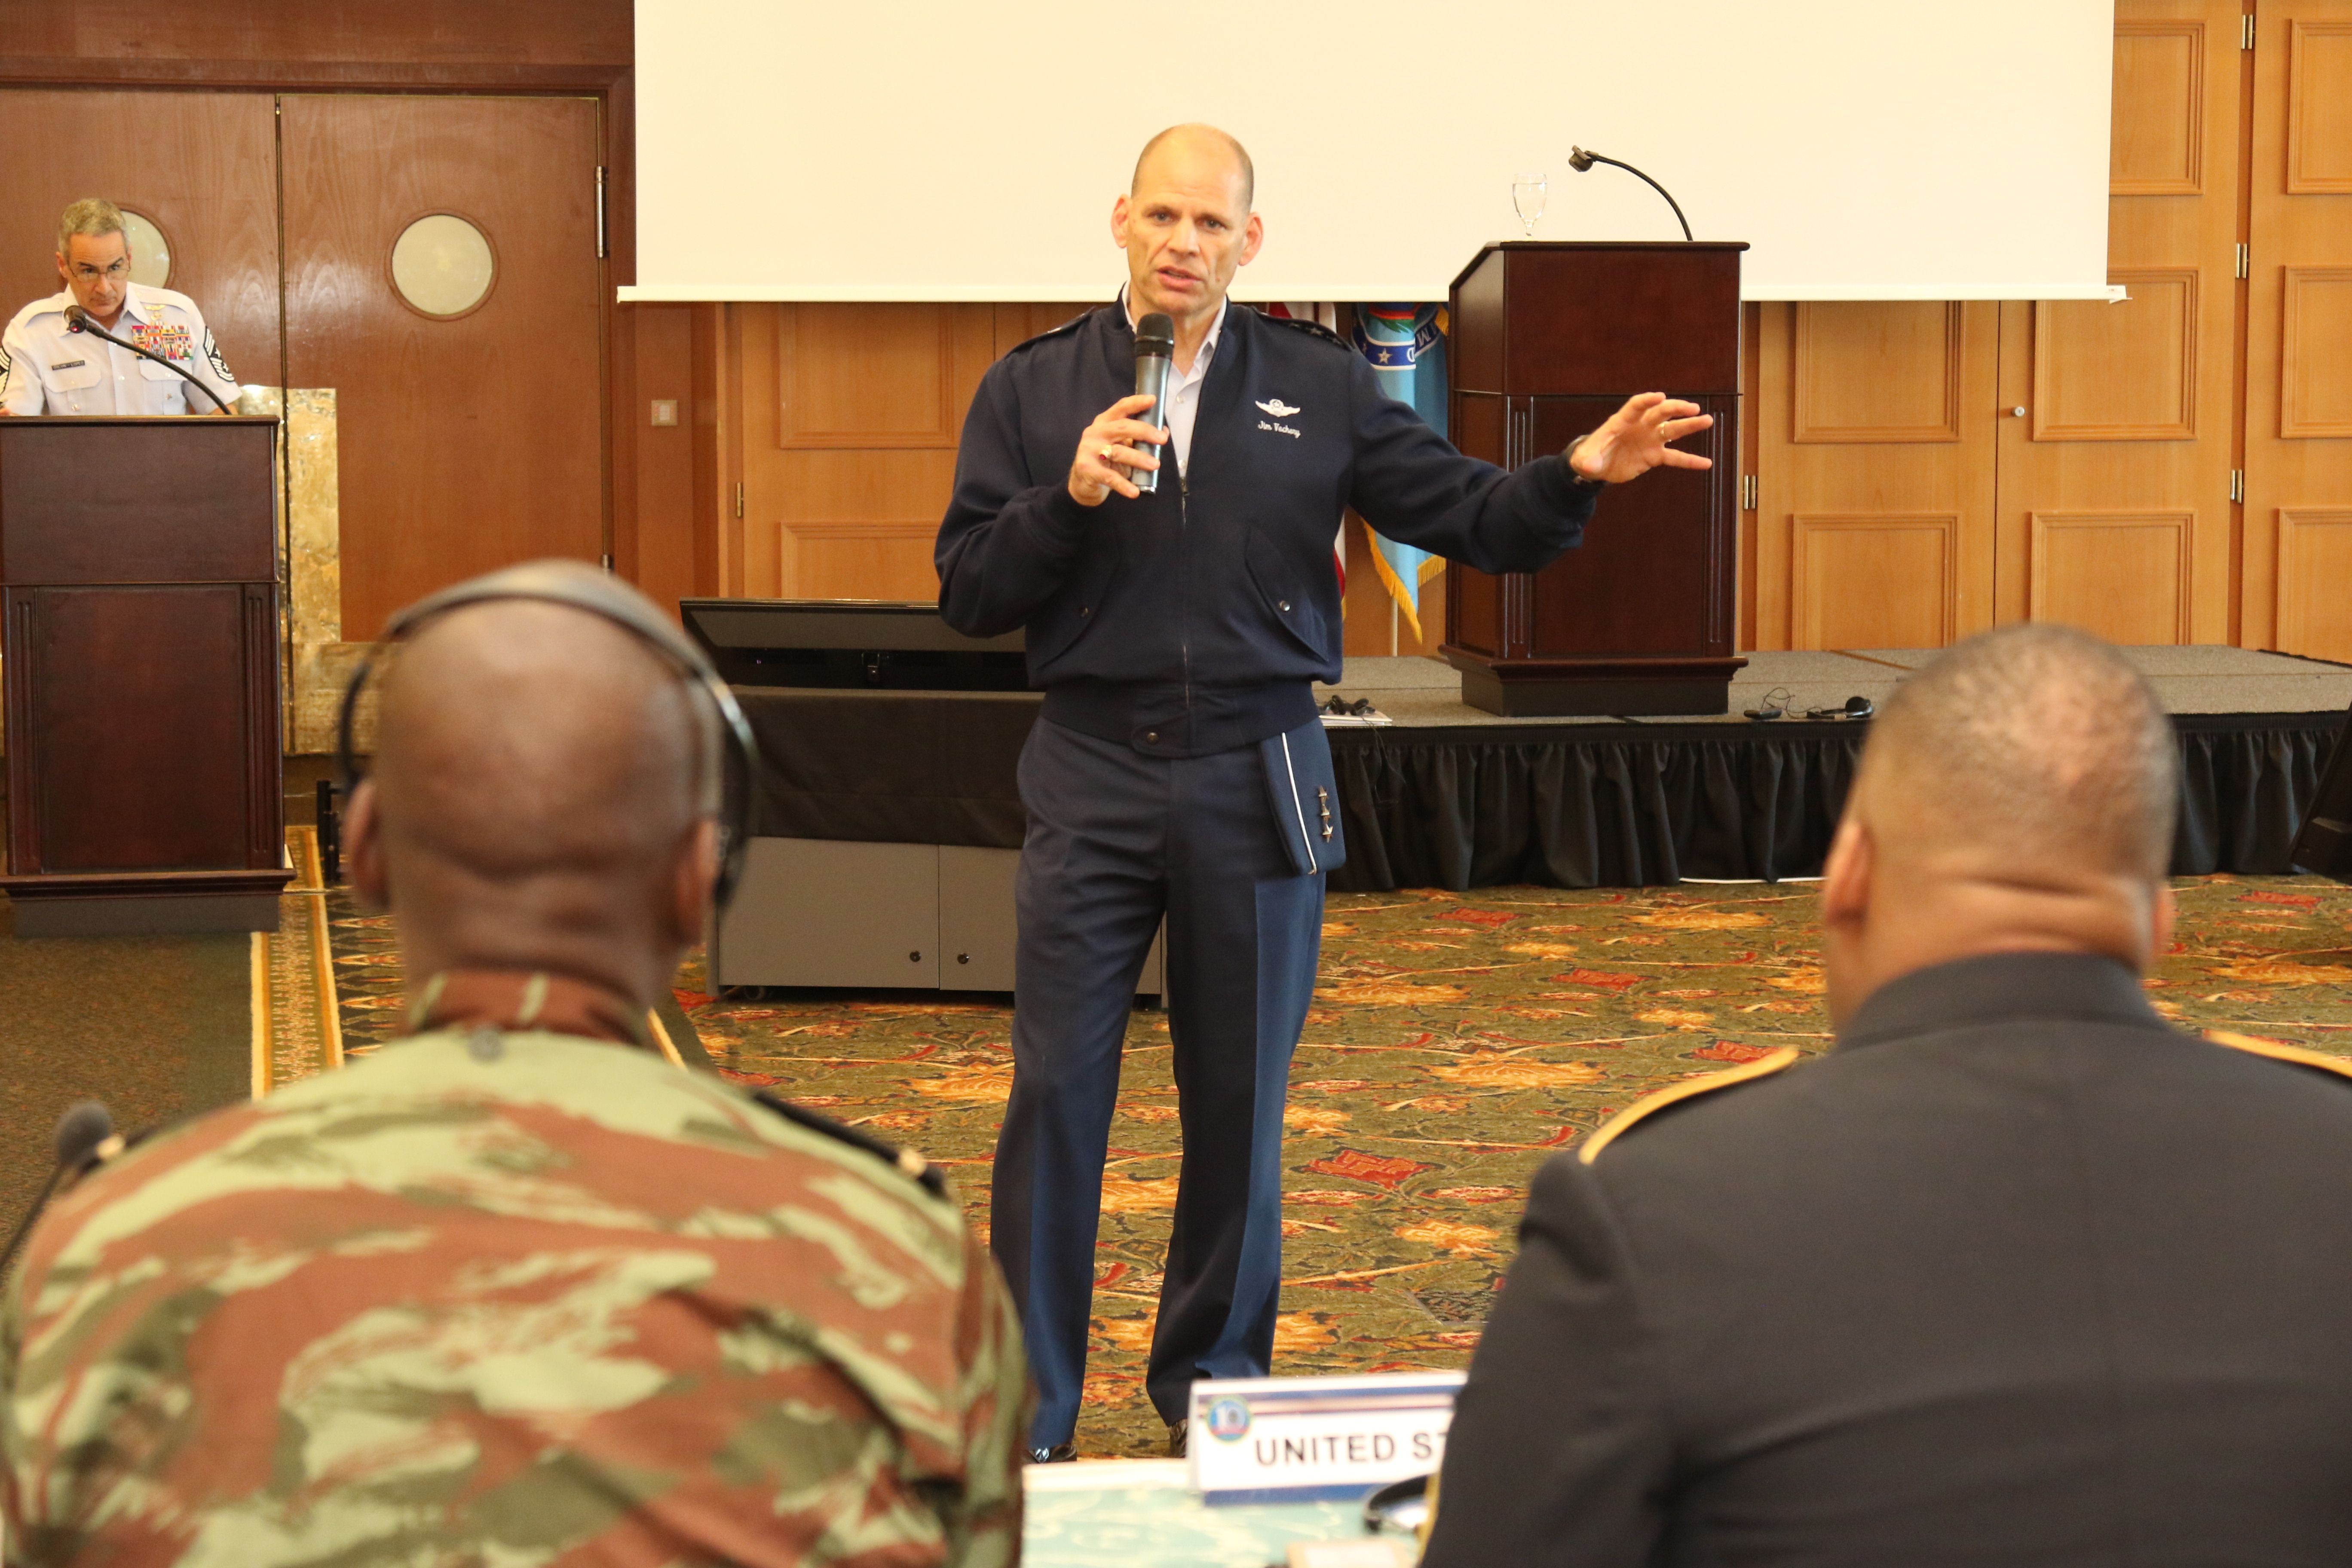 U.S. Air Force Lt. Gen. James Vechery, Deputy to the Commander for Military Operations, U.S. Africa Command, speaks during the 2018 Africa Senior Enlisted Leader Conference held Oct. 16-19 in Garmisch-Partenkirchen, Germany. This year, senior enlisted leaders from 25 African partner nations and the U.S. attended the event.